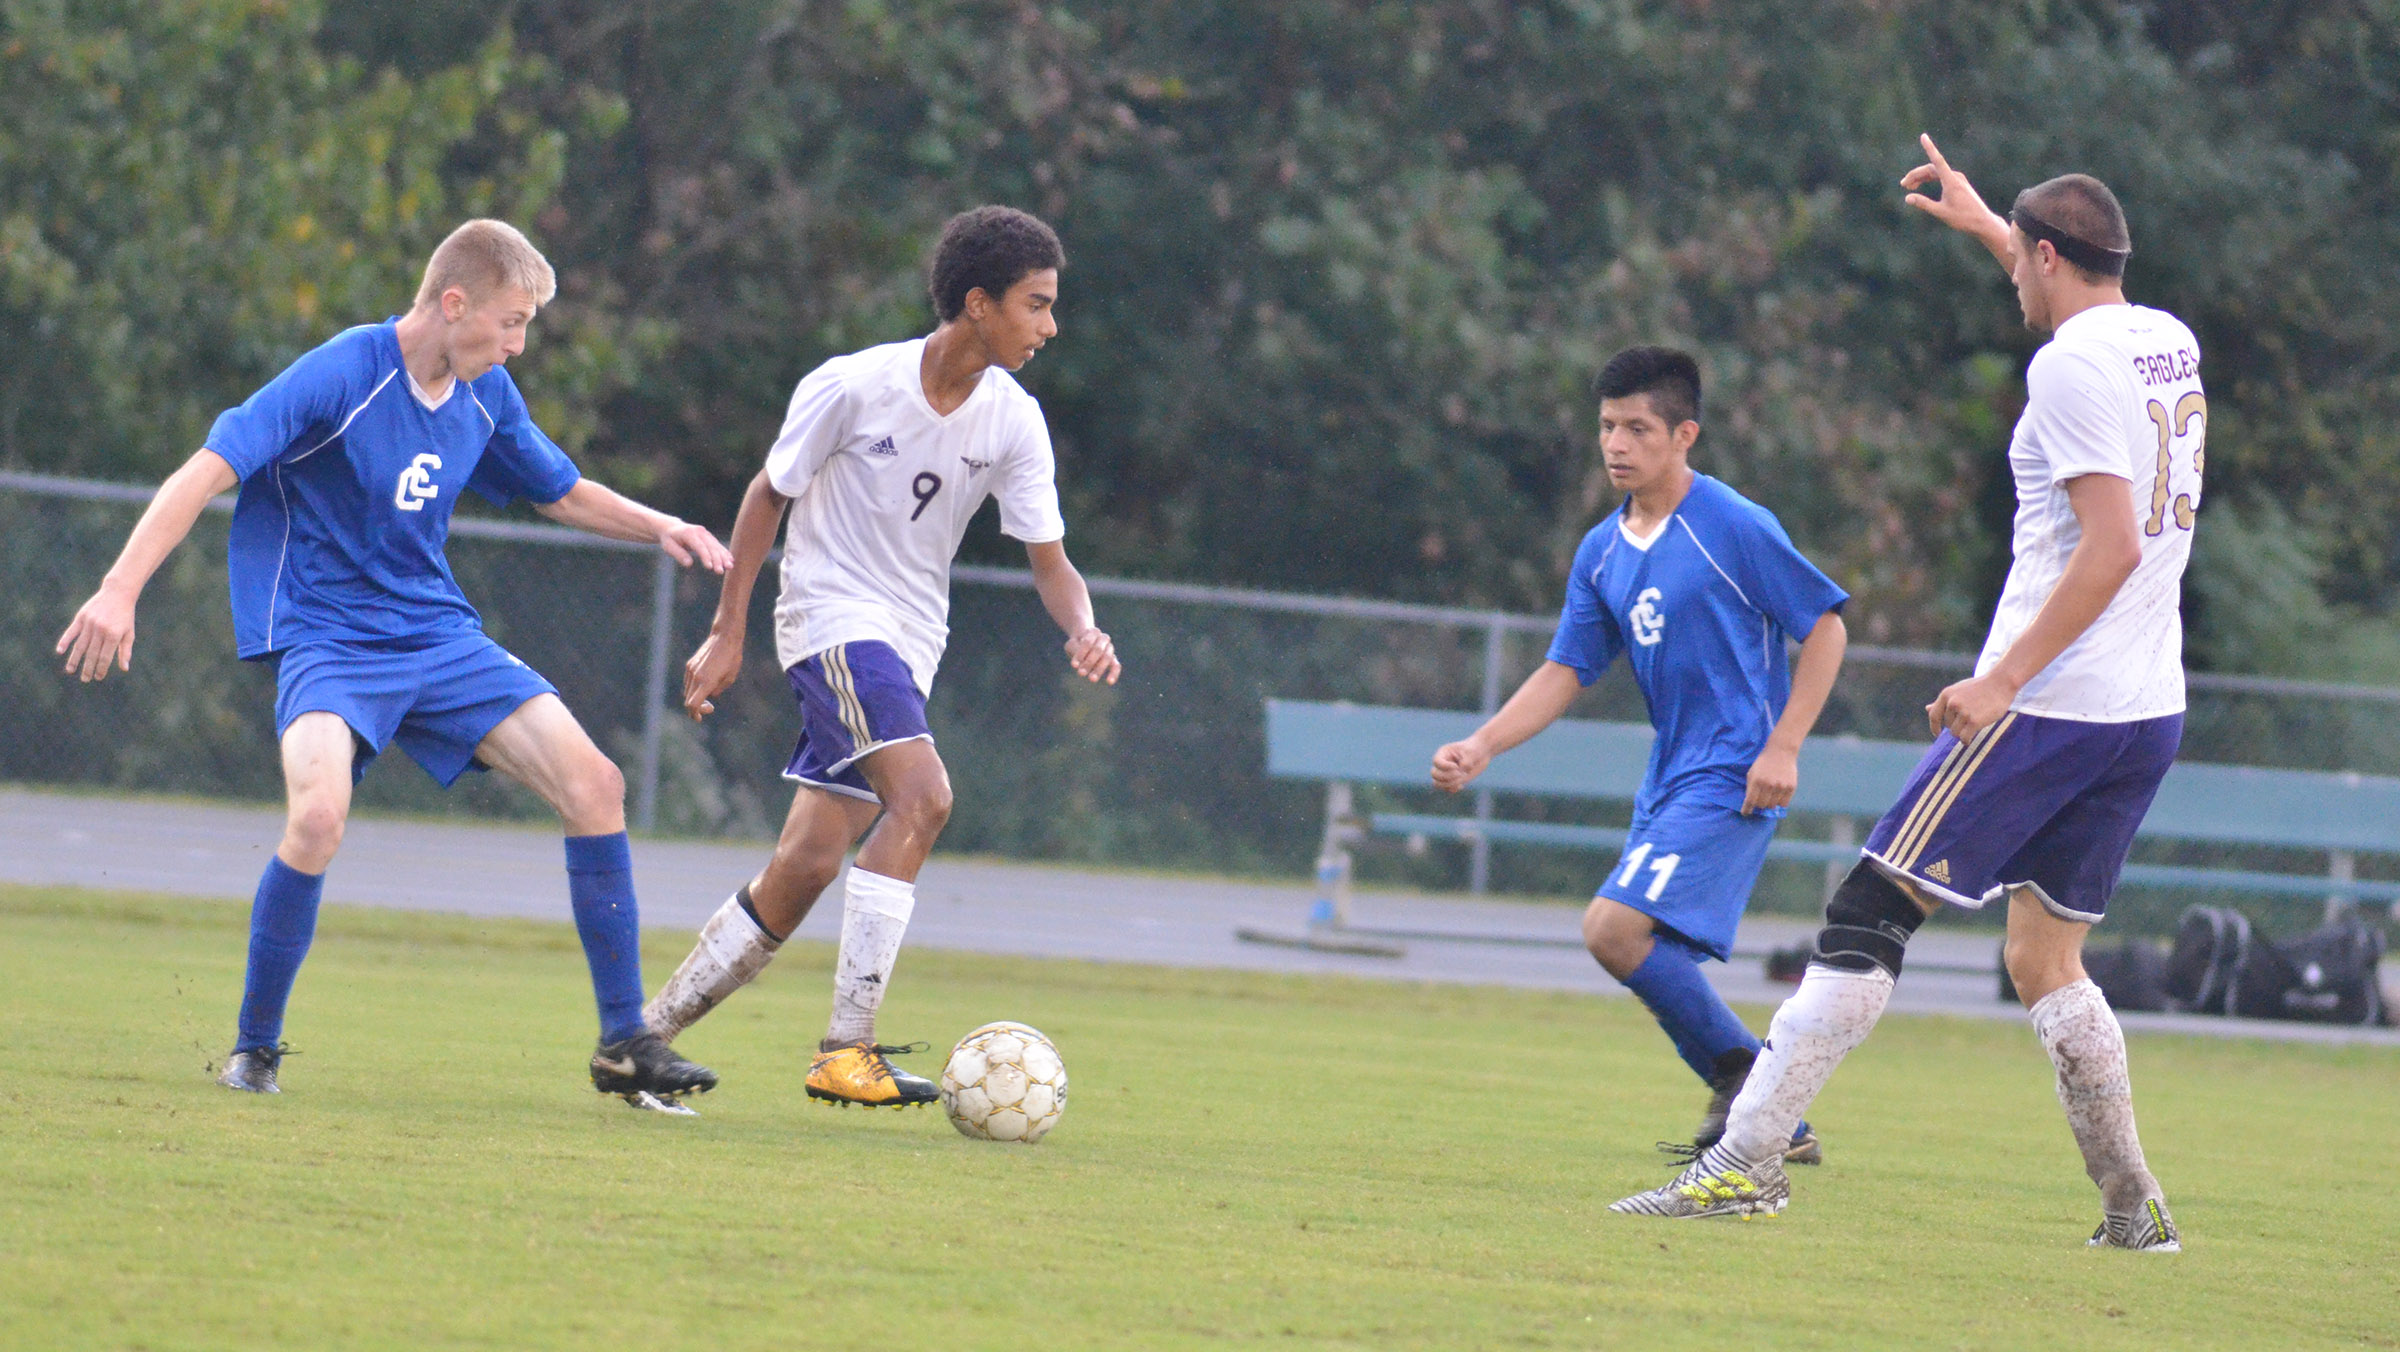 CHS sophomore David Silva, at left, and senior Logan Cole protect the ball.